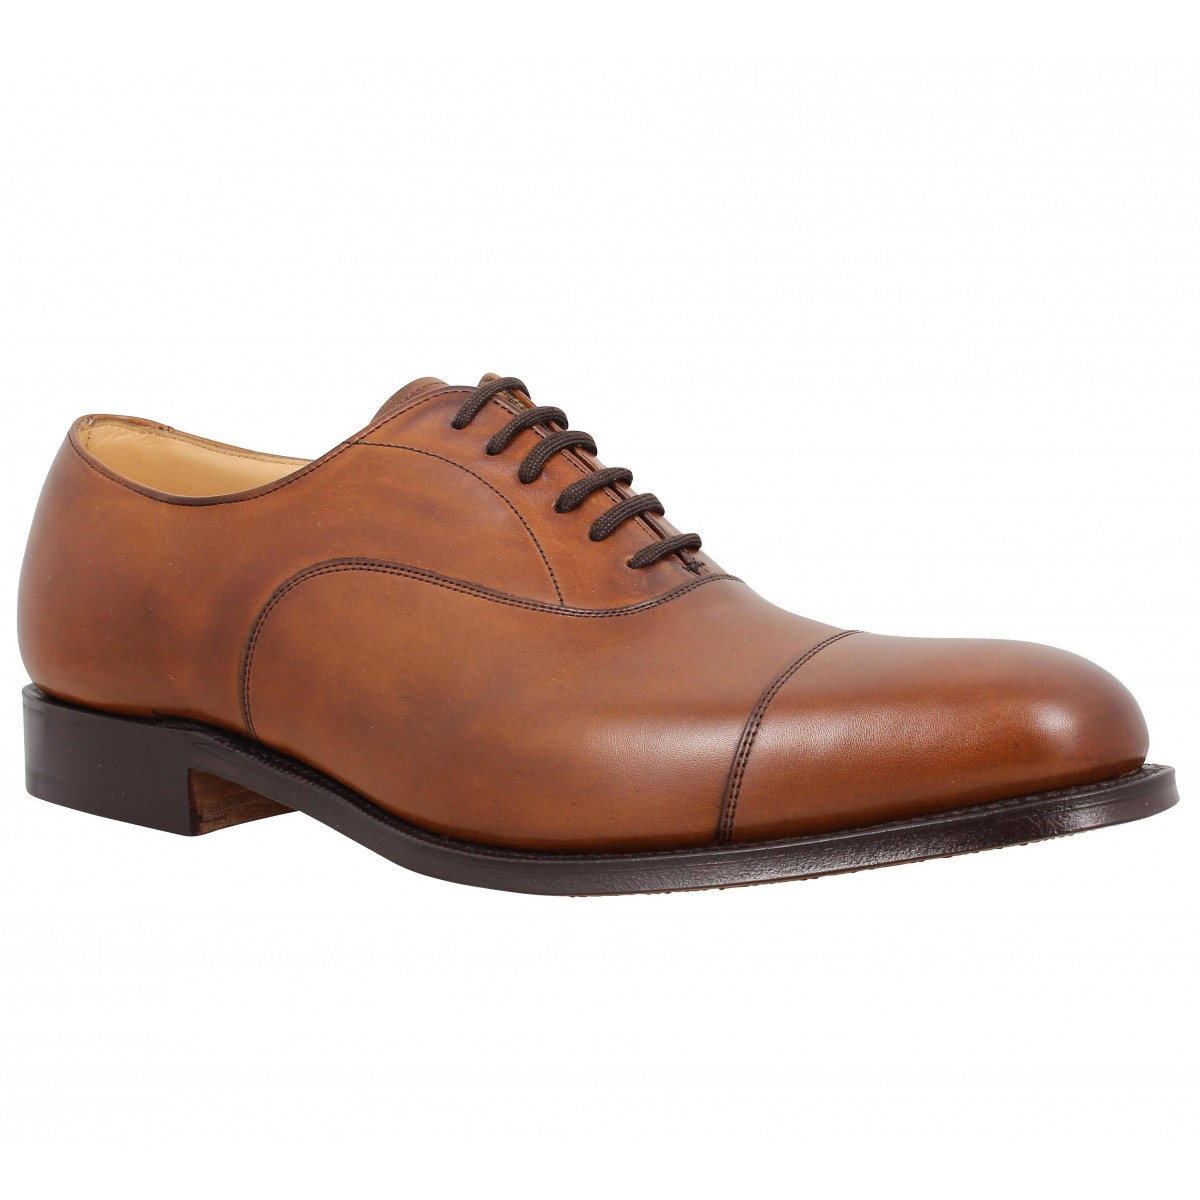 Chaussures à lacets CHURCH'S Dubai cuir Walnut